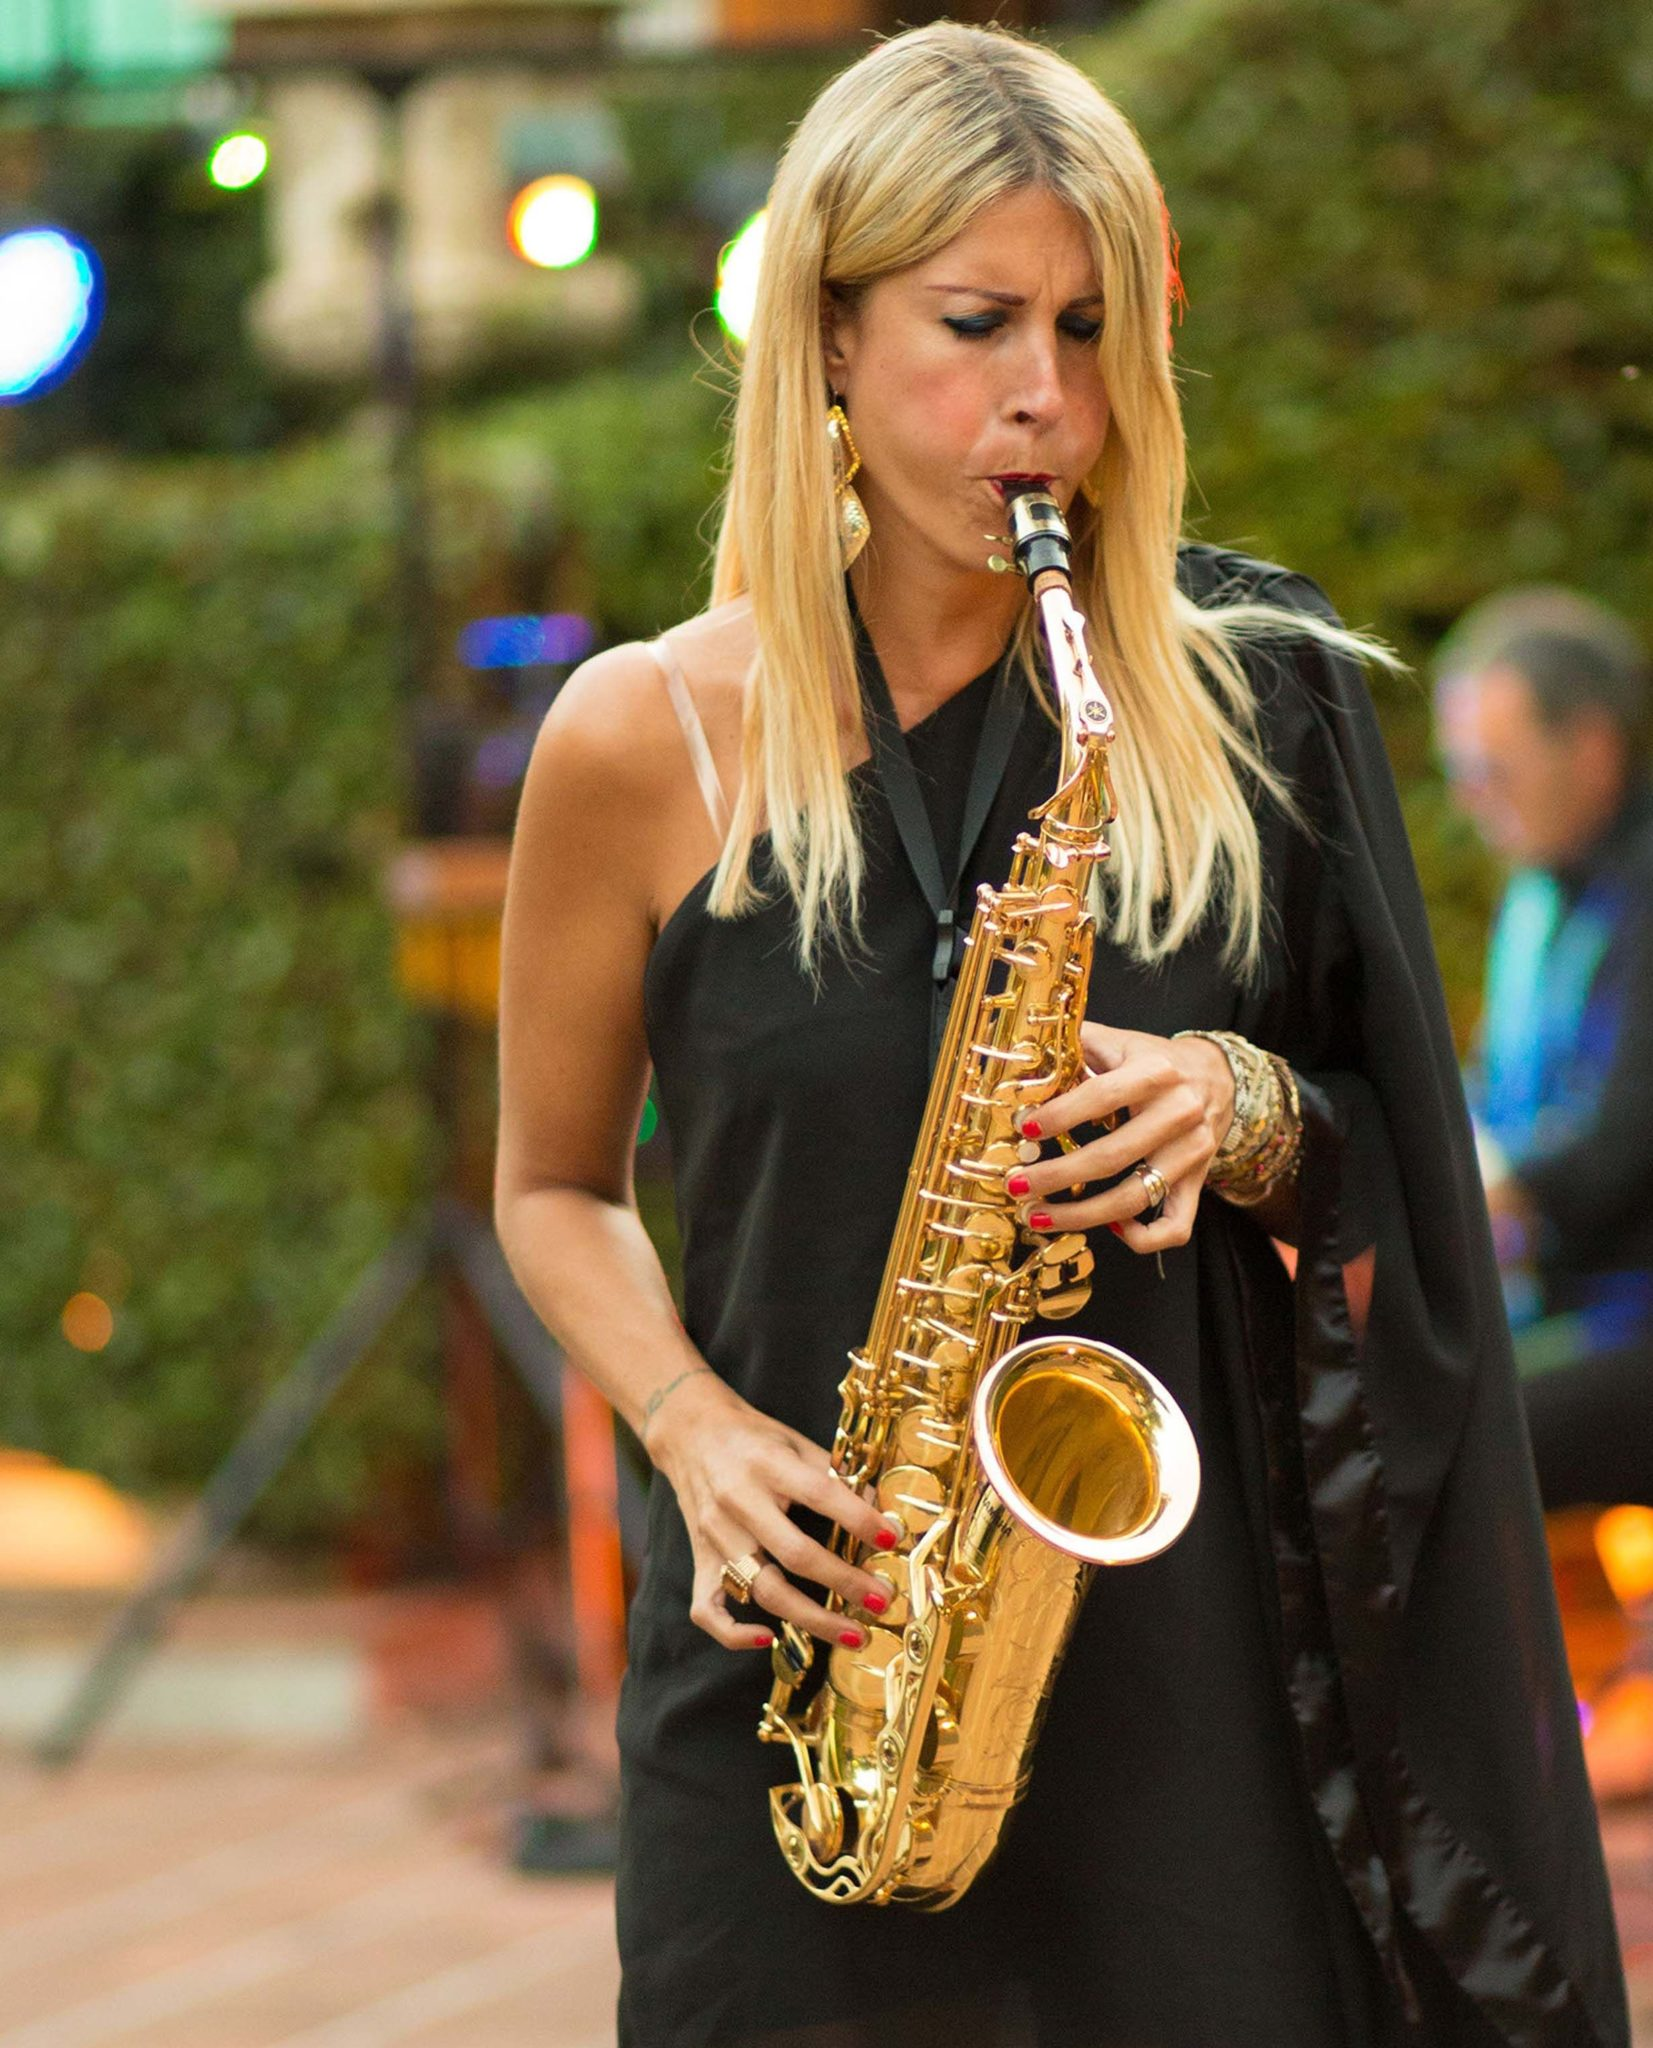 animation musicale pour mariage saxophonniste - organisation mariage lyon